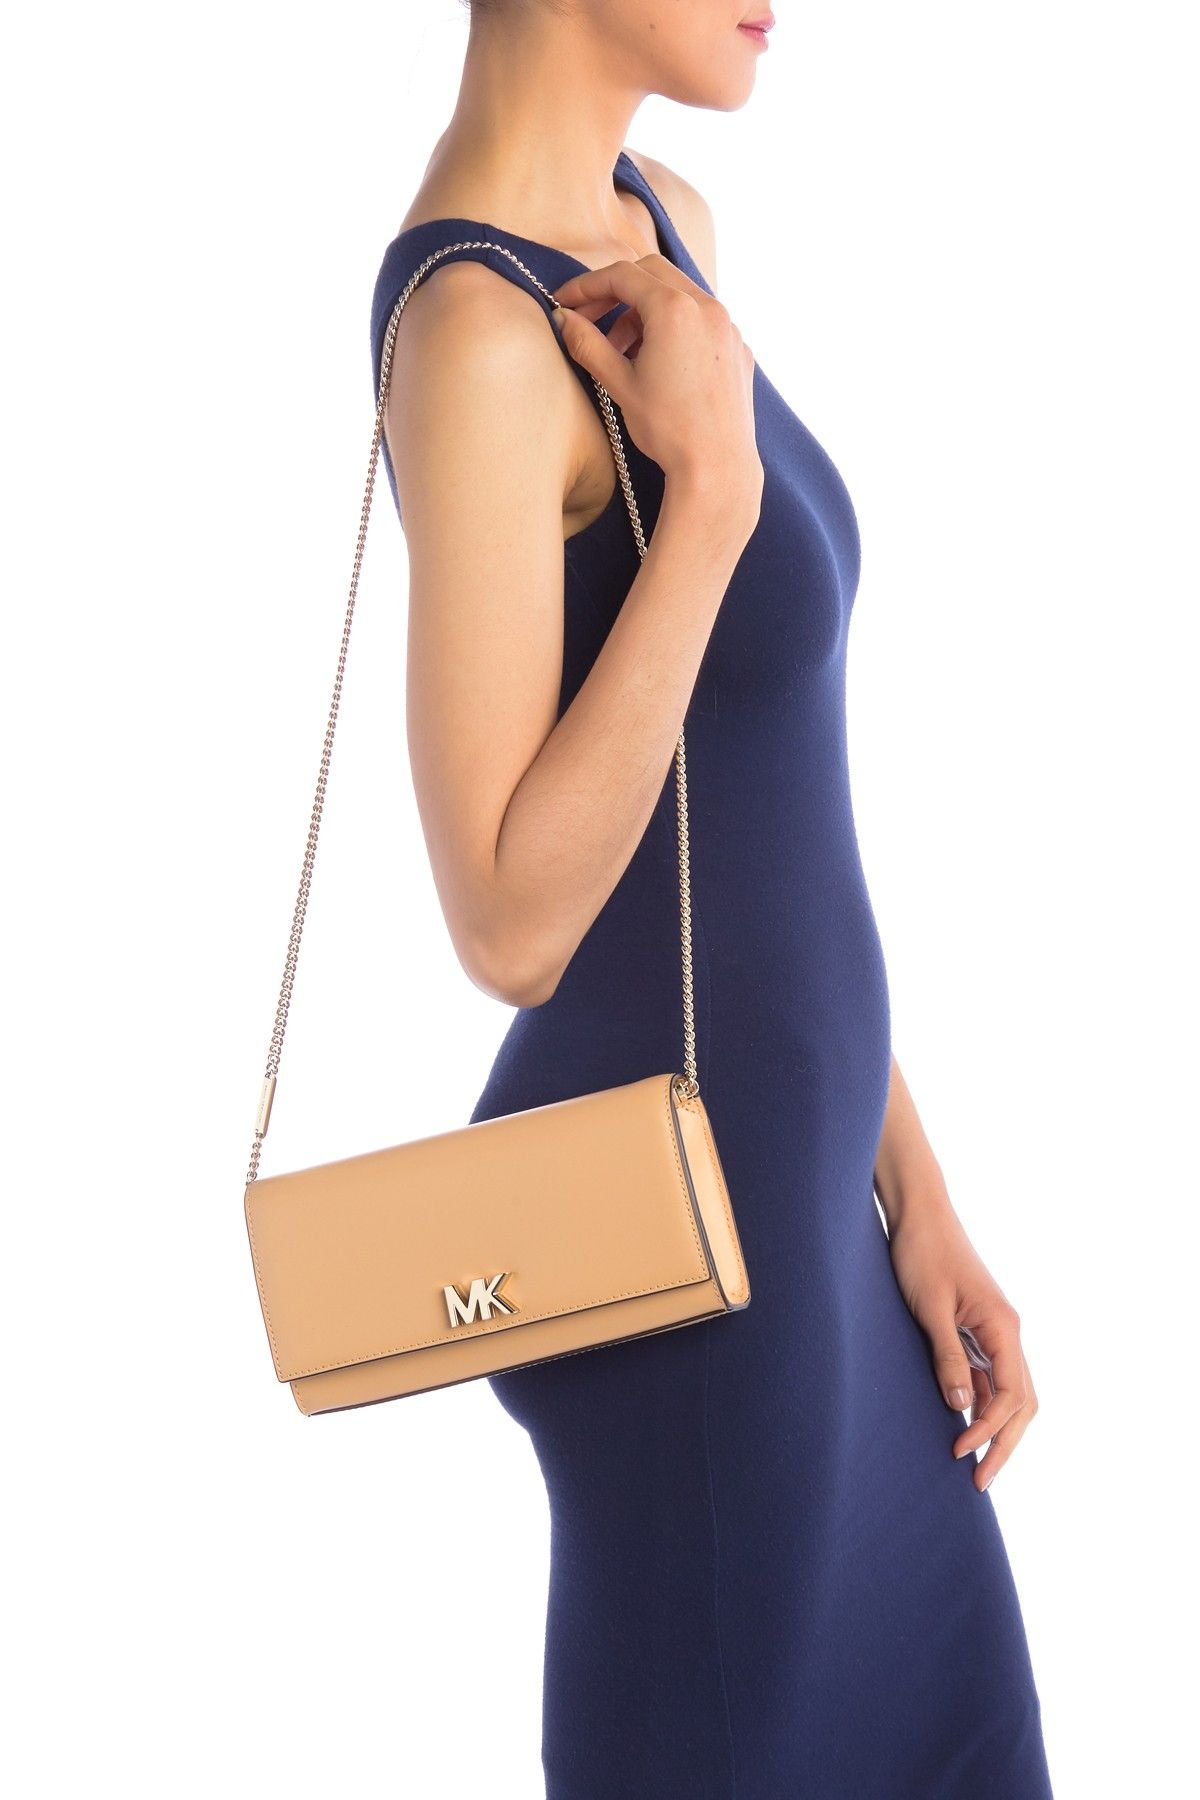 d94f41a9c000 MICHAEL Michael Kors - Mott Large Leather Clutch Crossbody is now 50% off.  Free Shipping on orders over $100.